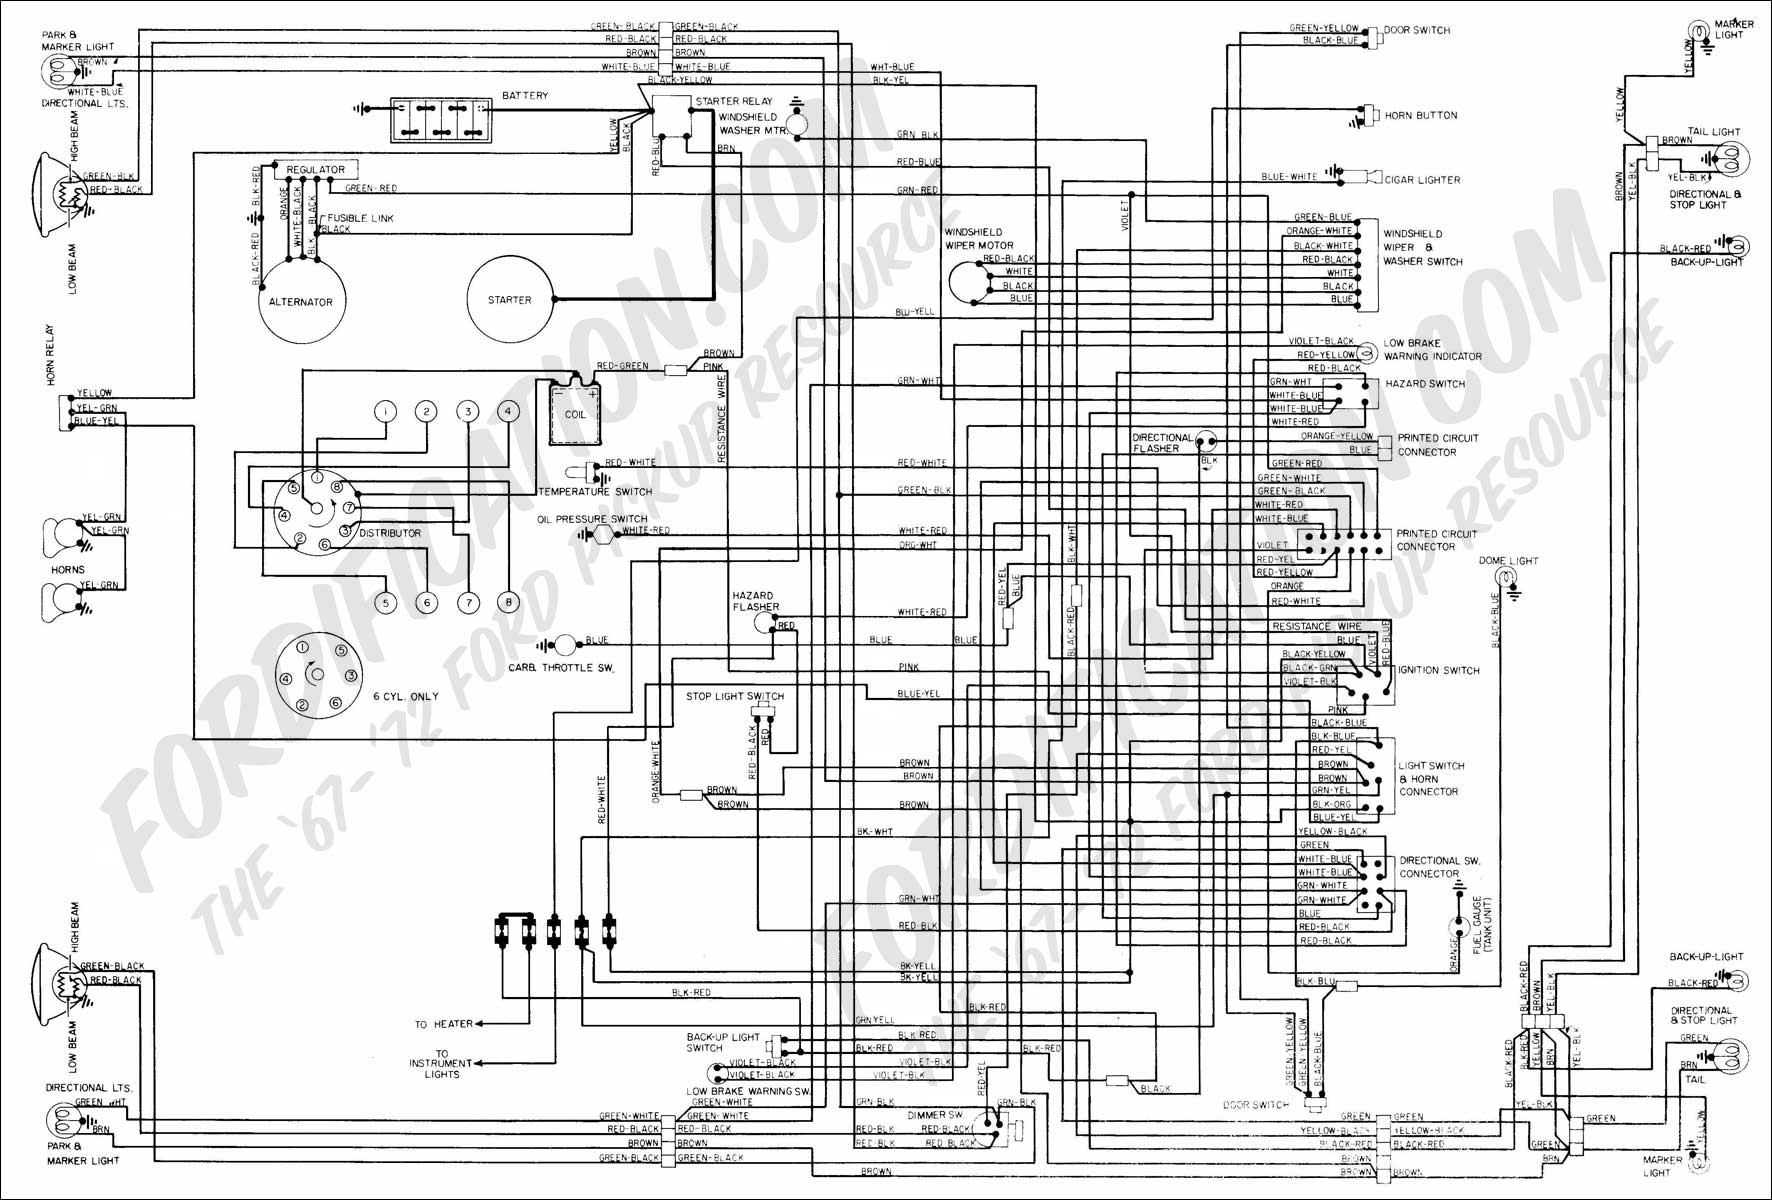 1970 Ford Wiring Diagram | Wiring Liry Wiring Diagram For Ford Truck on pickup truck diagram, 1968 ford truck radio, 1968 ford truck cab mount, 1968 ford truck parts, 1968 ford truck brochure, 1968 ford truck exhaust, 1968 ford truck air cleaner, 1968 ford truck shop manual, truck parts diagram, 93 ford relay diagram, 1968 ford truck transmission, 1968 ford truck wire schematic drawing, 1968 ford truck carburetor, ford truck engine diagram, ford truck rear brake diagram, 1968 ford truck wheels,